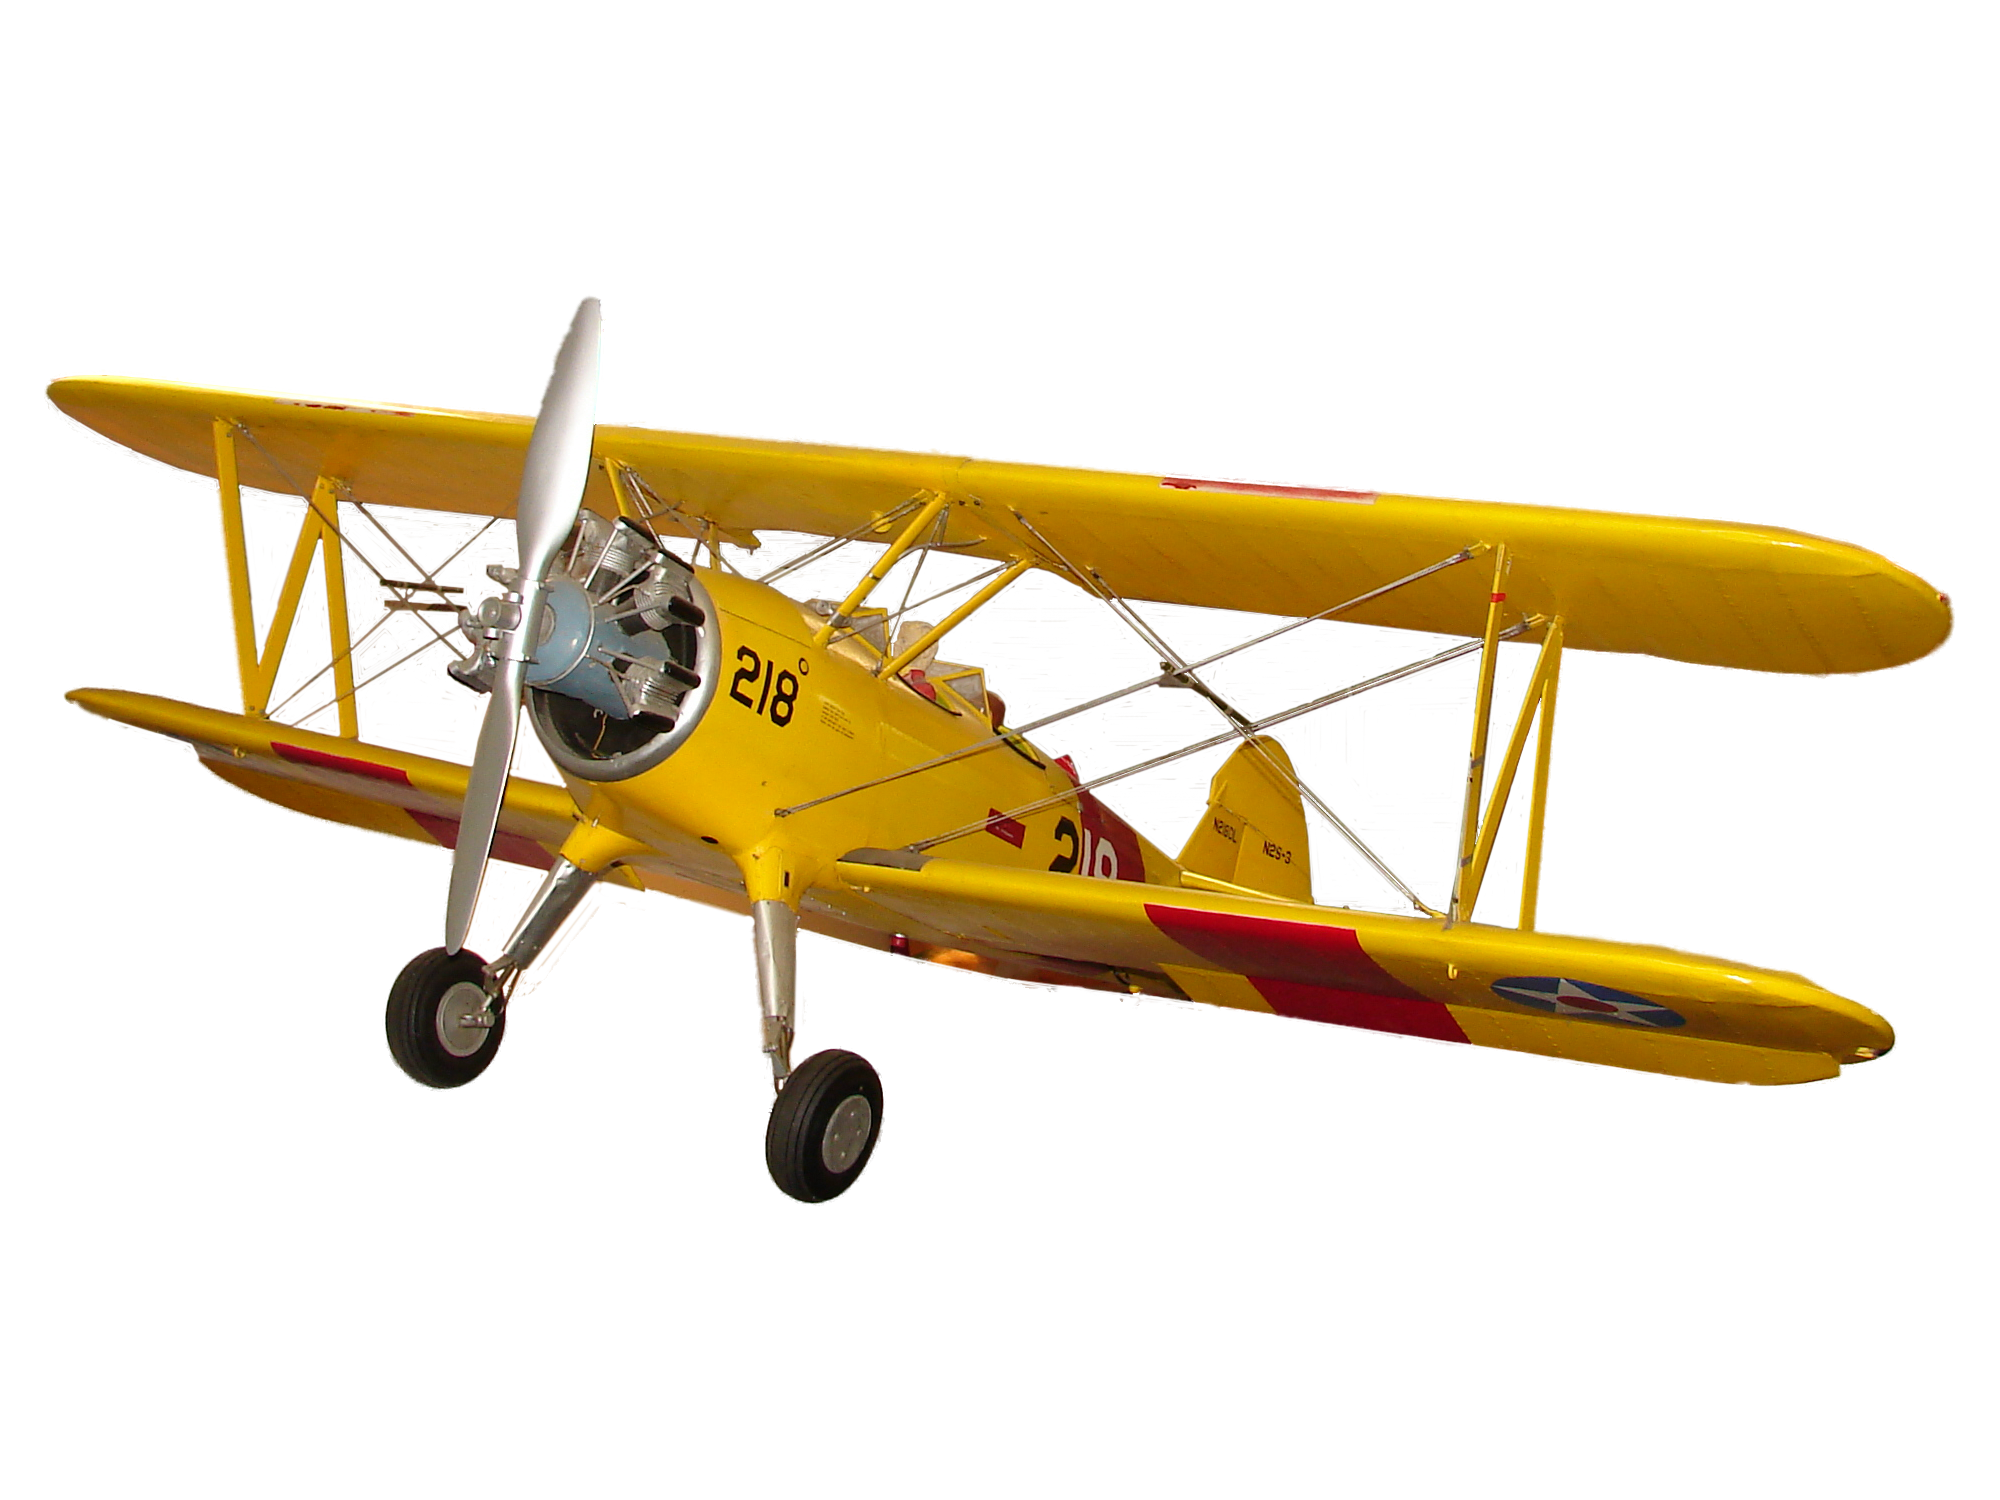 2000x1500 Aircraft Clipart Old Plane